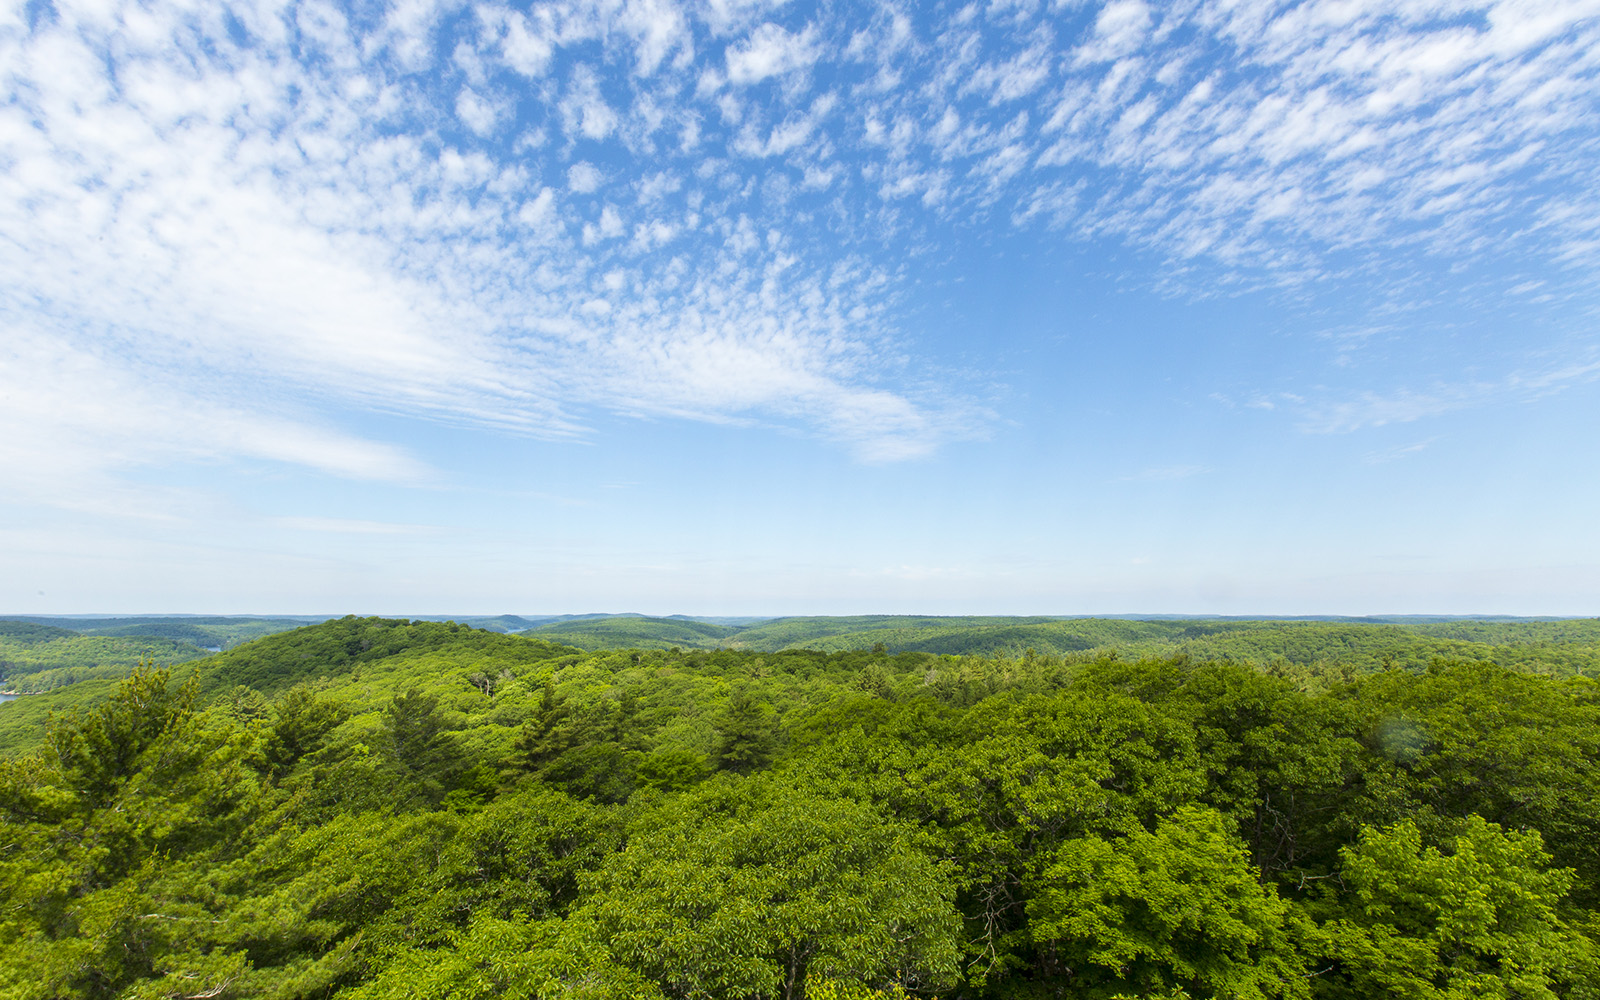 View from Dorset Tower with green trees and blue sky